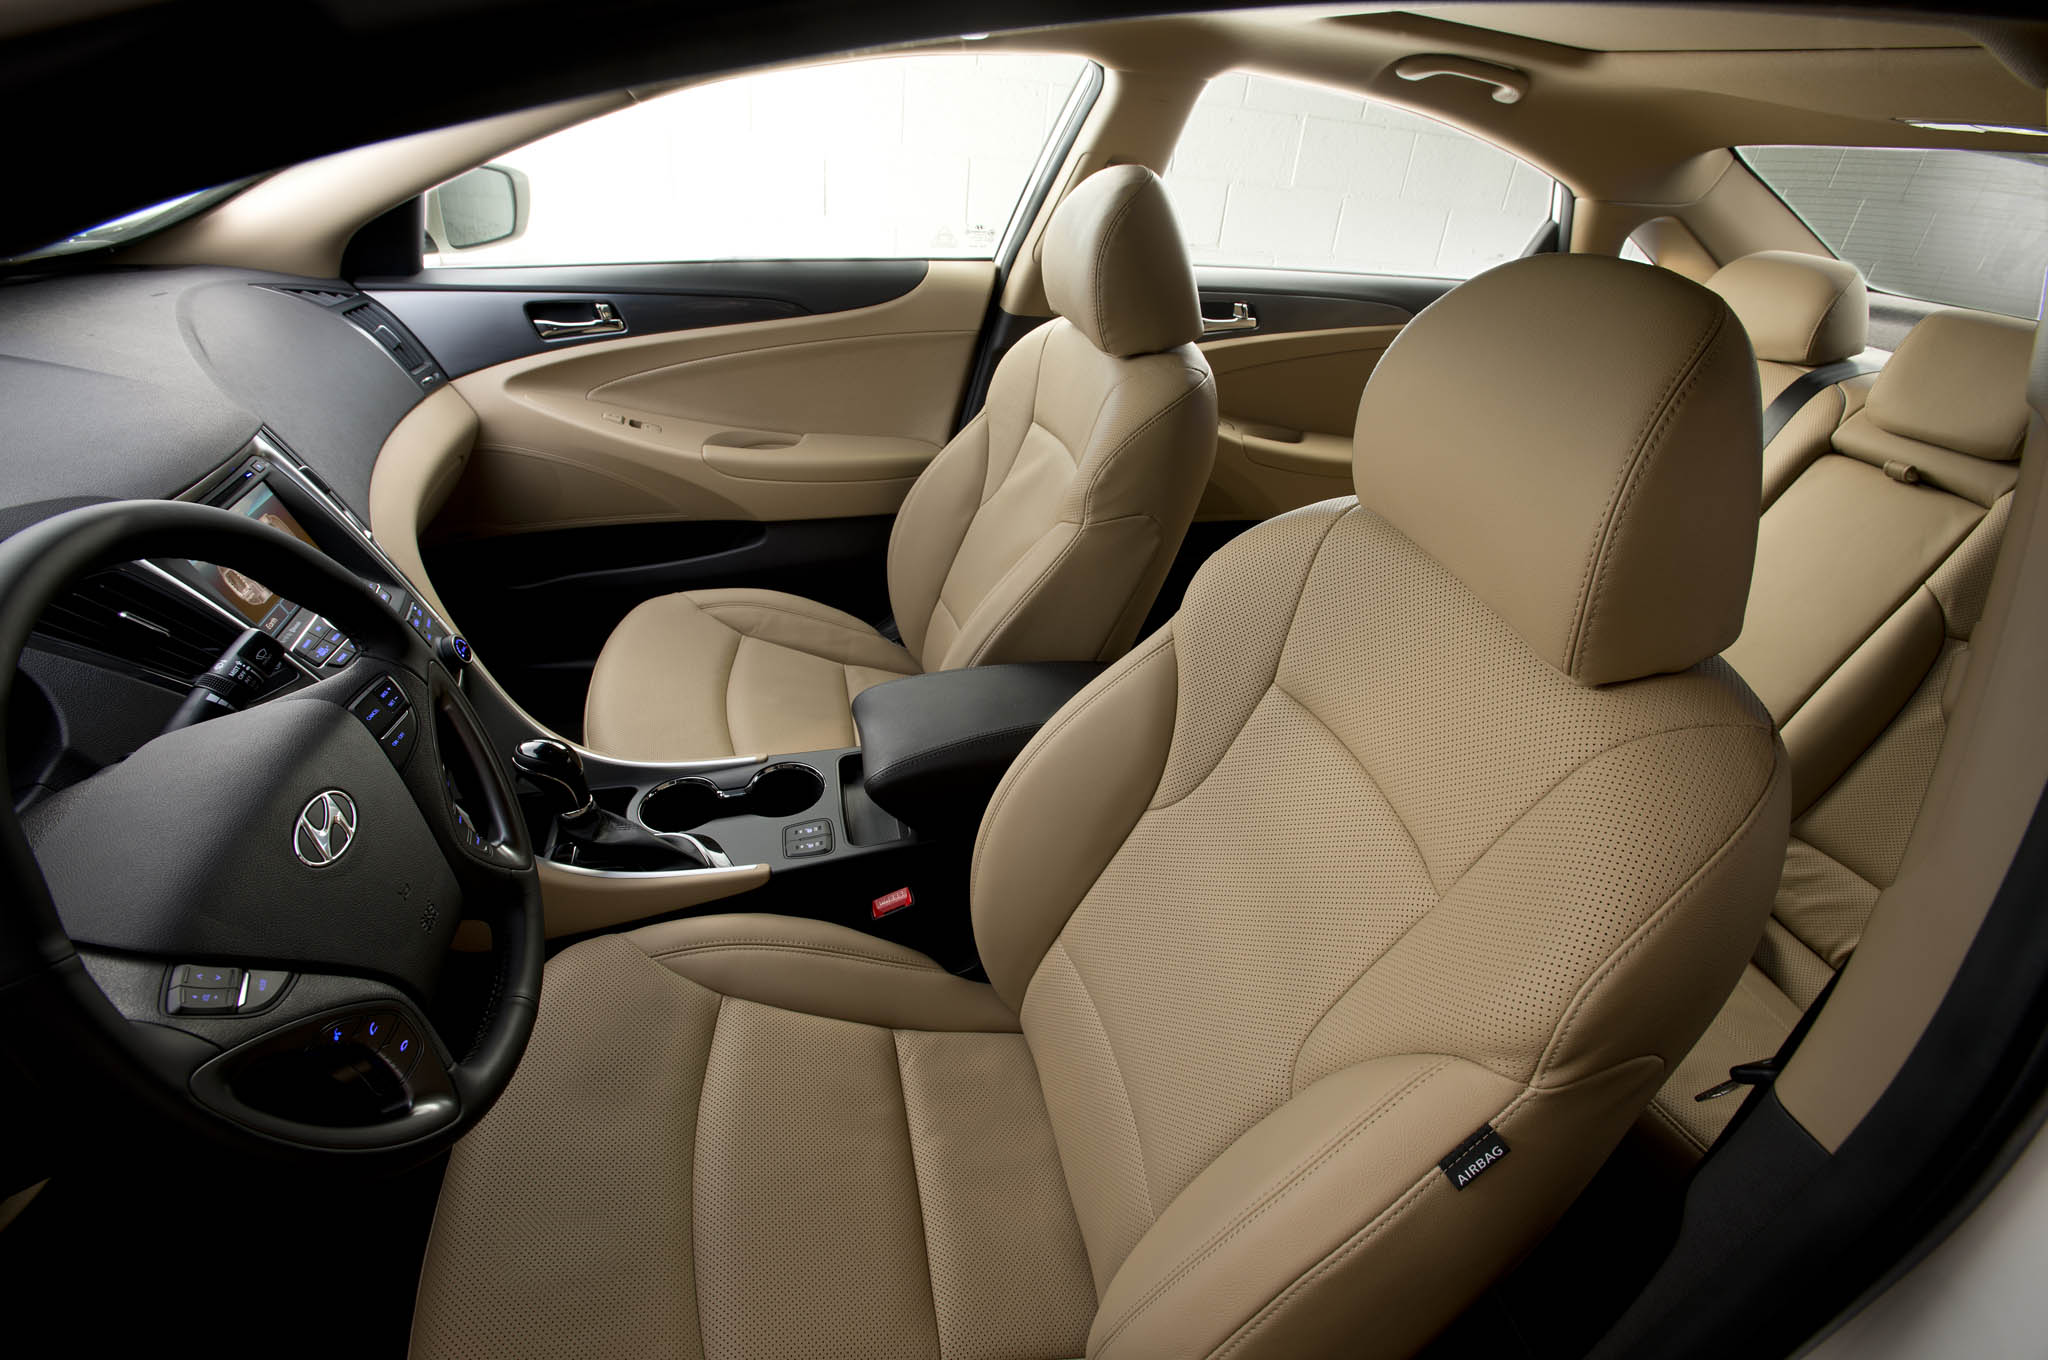 Charming The Mechanical Changes Applied To The 2013 Hyundai ...